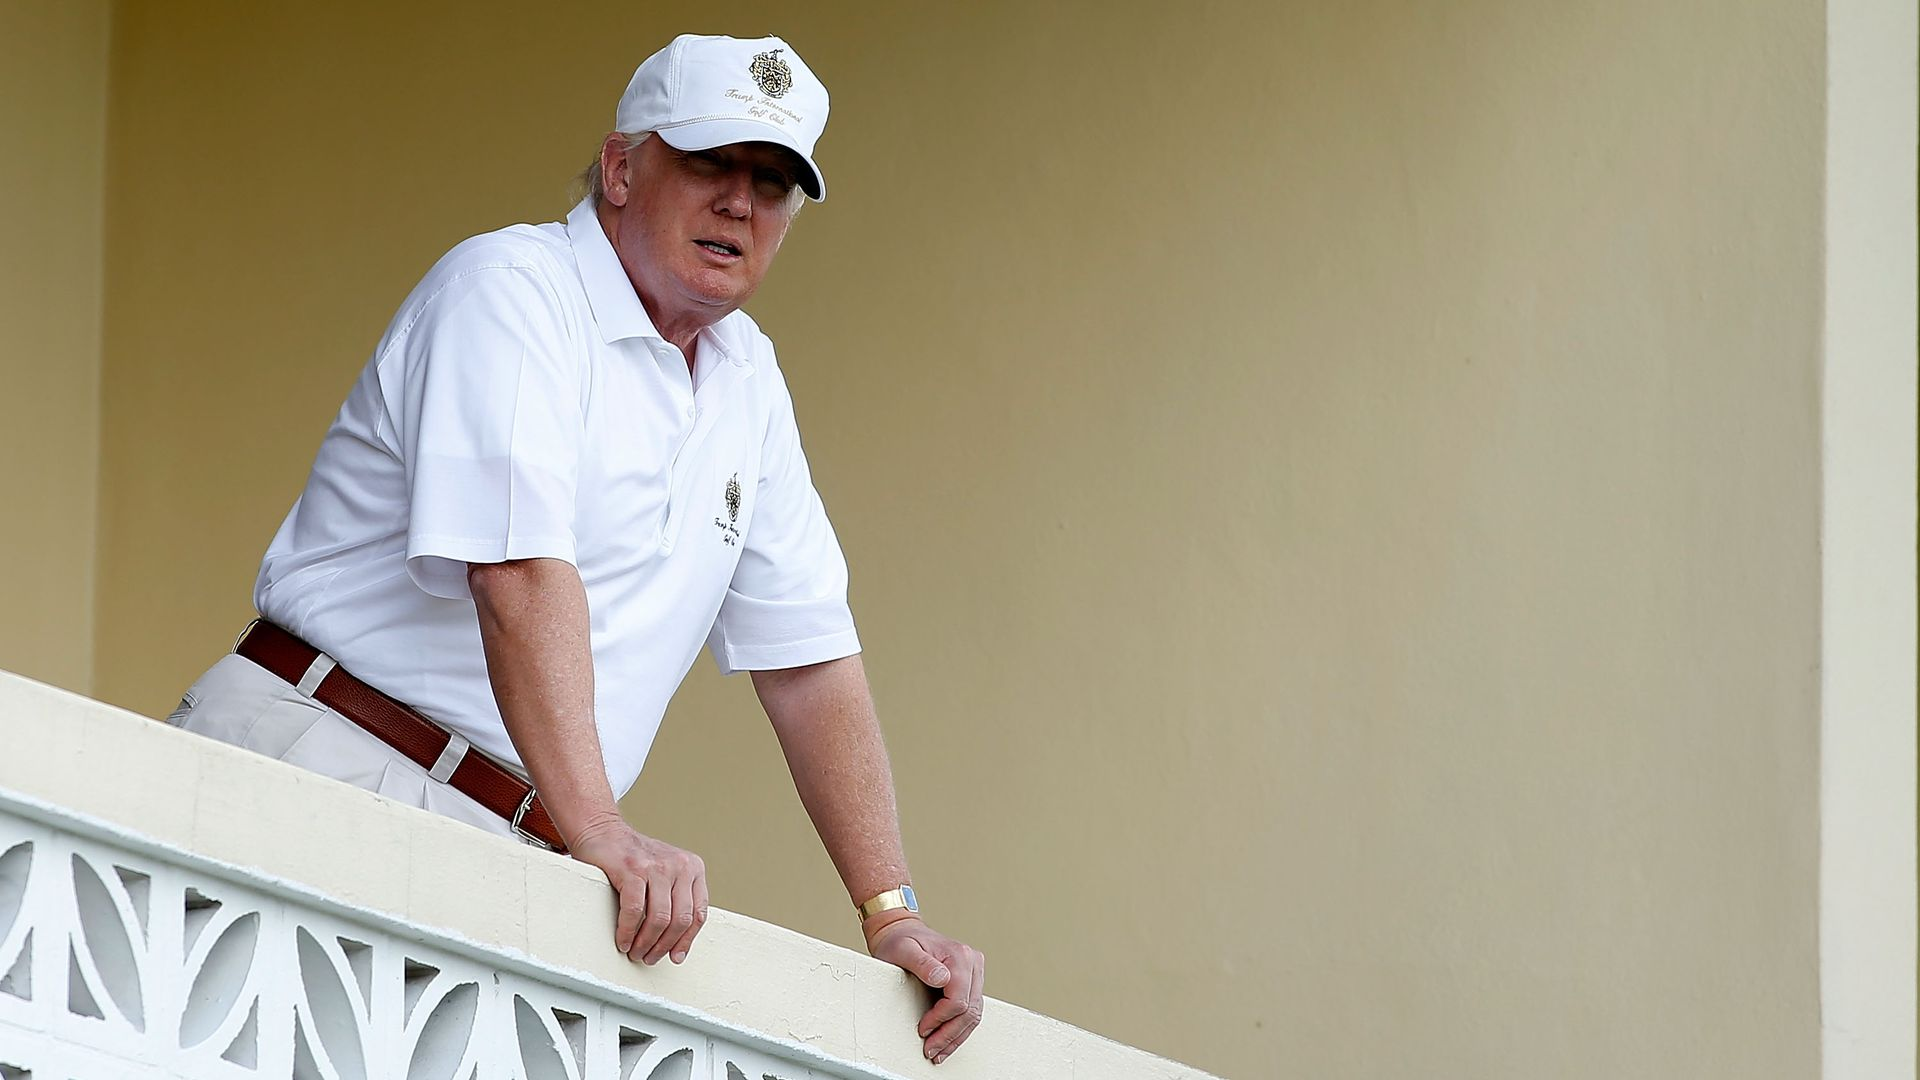 In this image, Trump stands in a white polo shirt and khakis and leans on a white balcony.